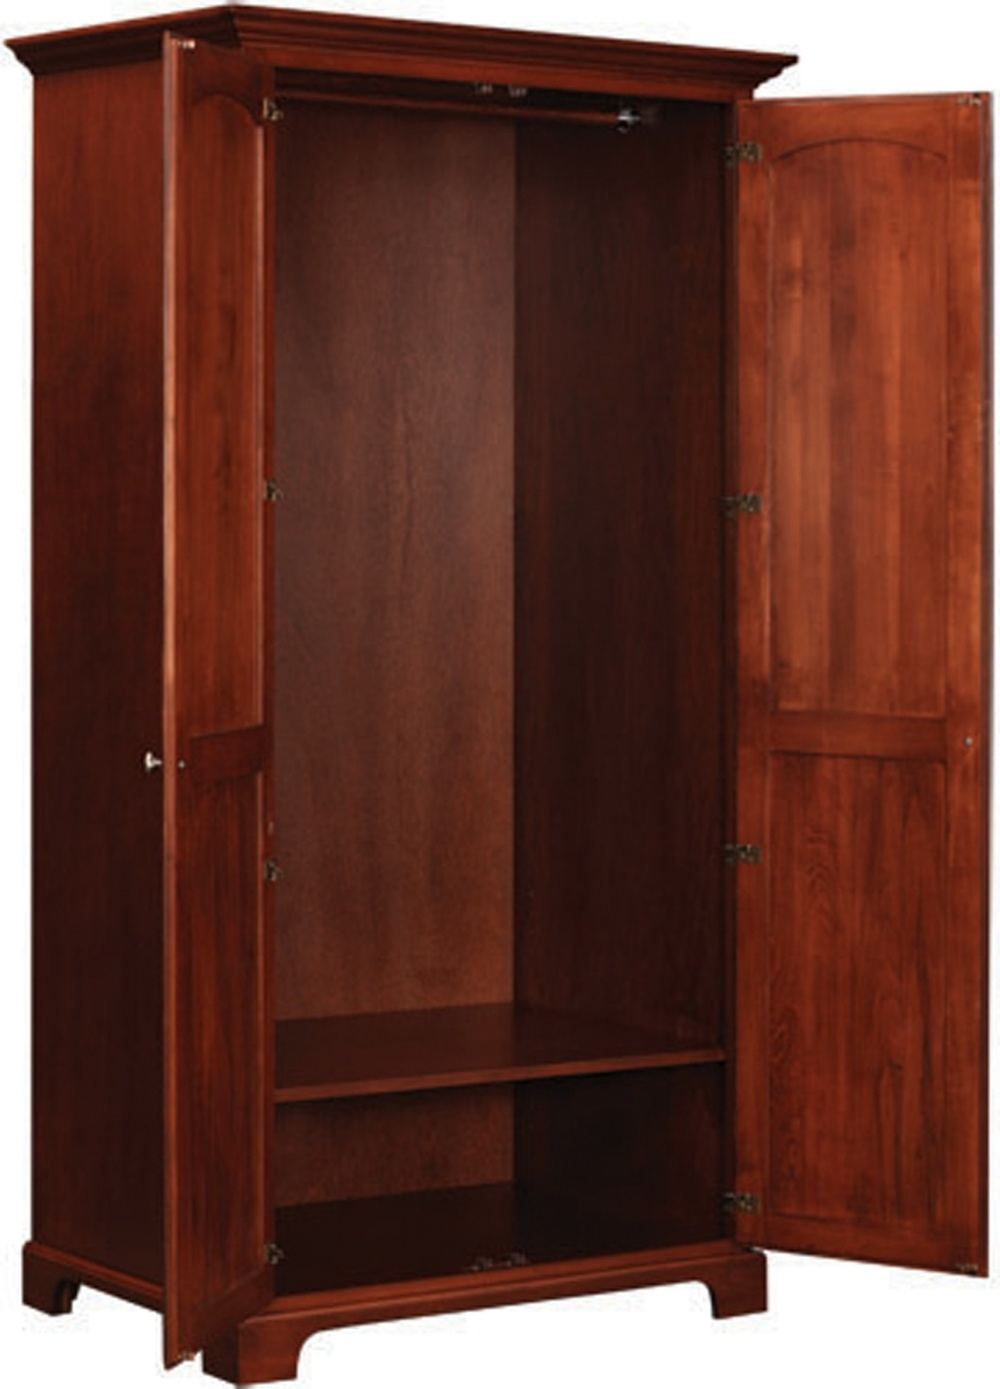 SO-159 Wardrobe (Open).jpg